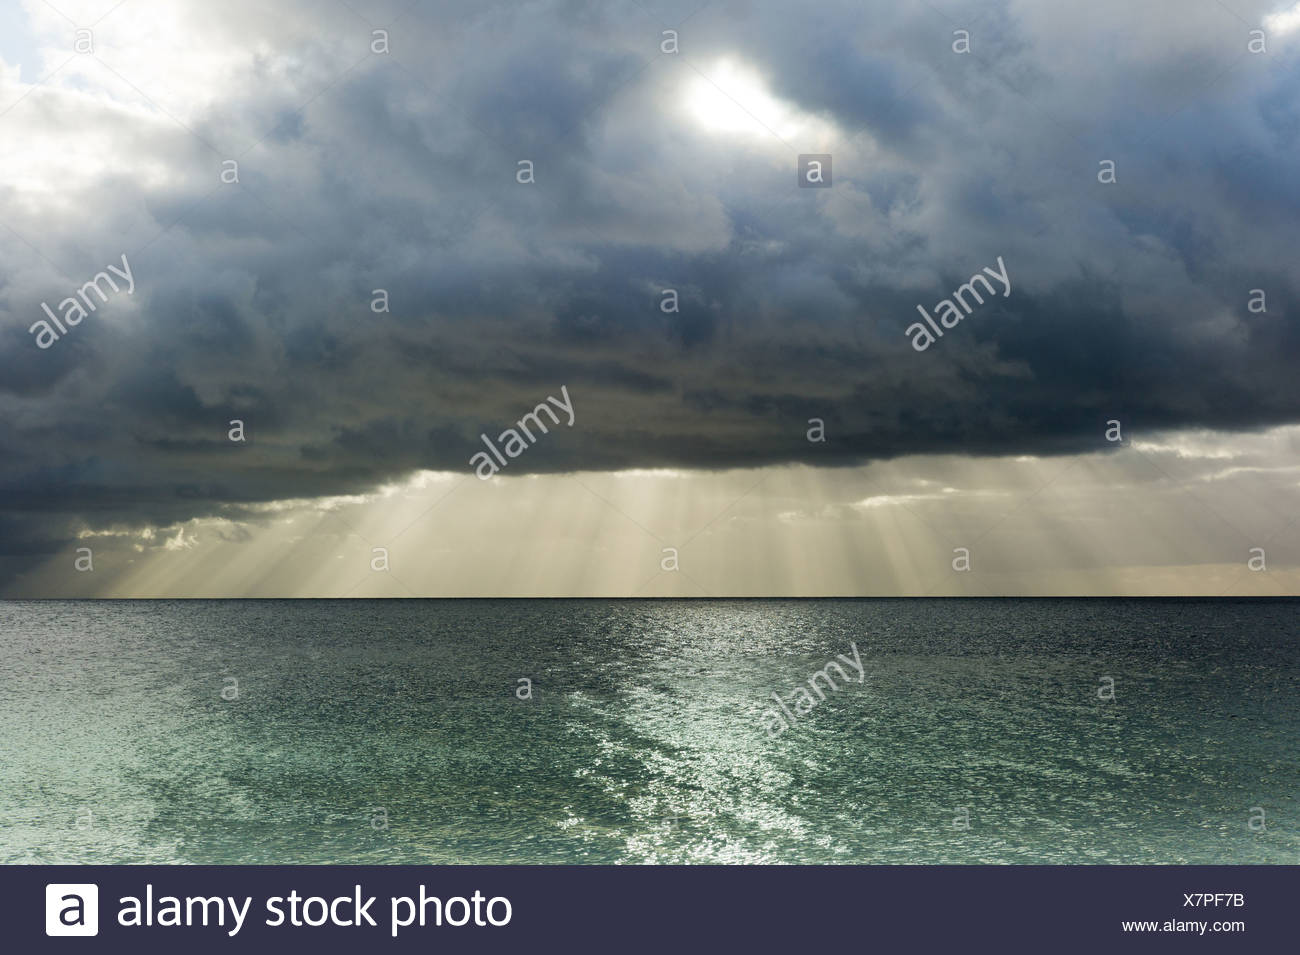 Prora, Germany, sunbeams shining through a thick cloud cover over the Baltic Sea - Stock Image